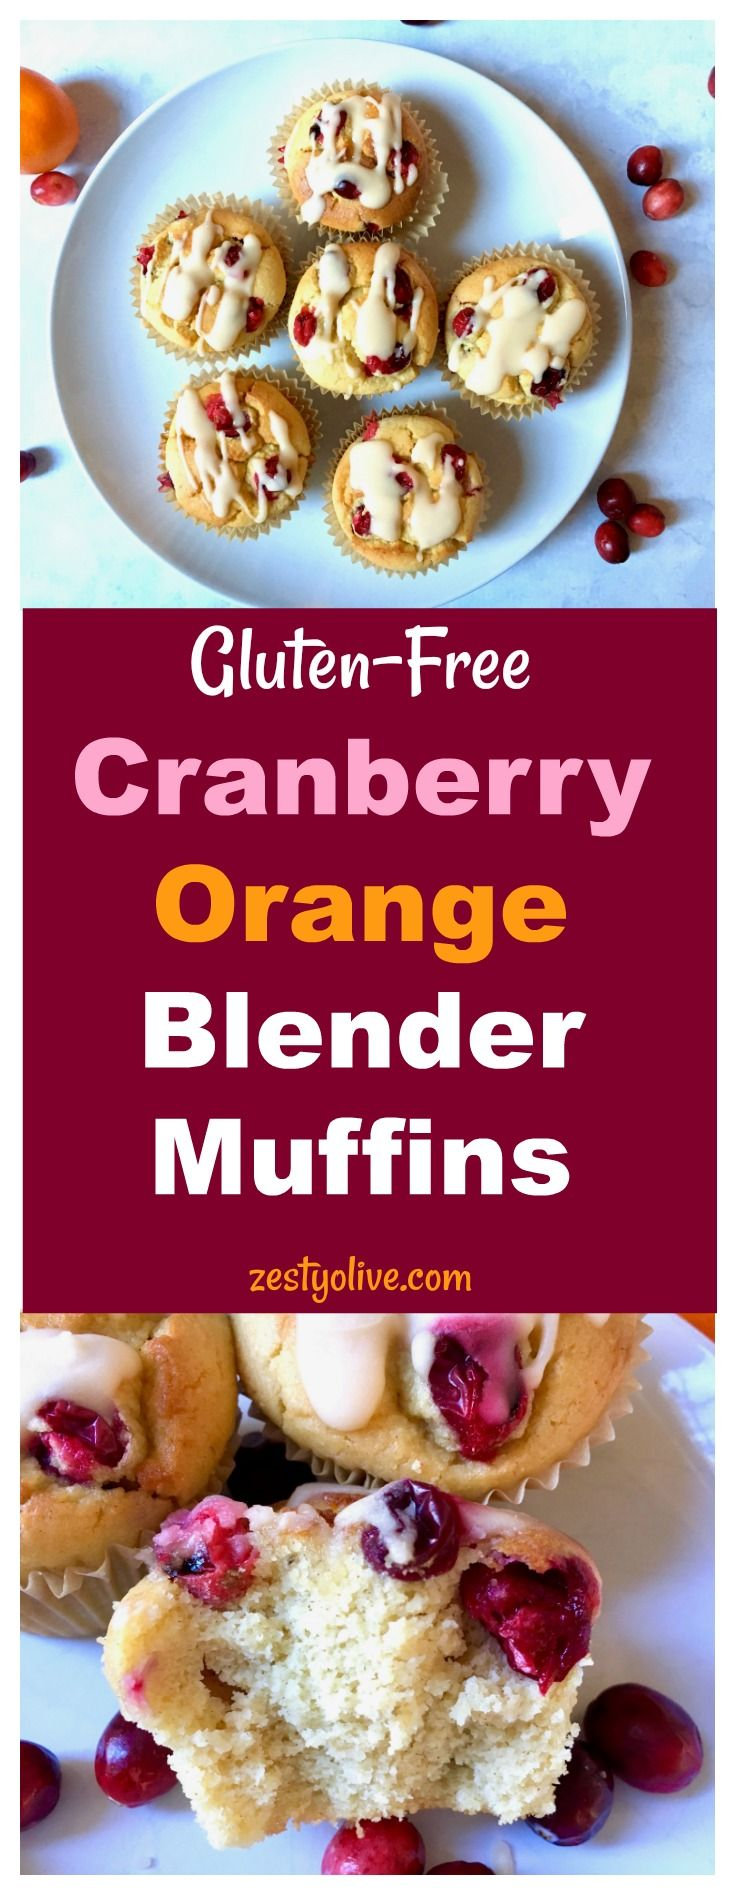 Gluten-Free Cranberry Orange Blender Muffins are an easy and healthy breakfast option or a delicious afternoon snack. #glutenfree #muffins #baking #blender #blenderrecipes #blendermuffins #recipes #cranberries #cranberry #orange